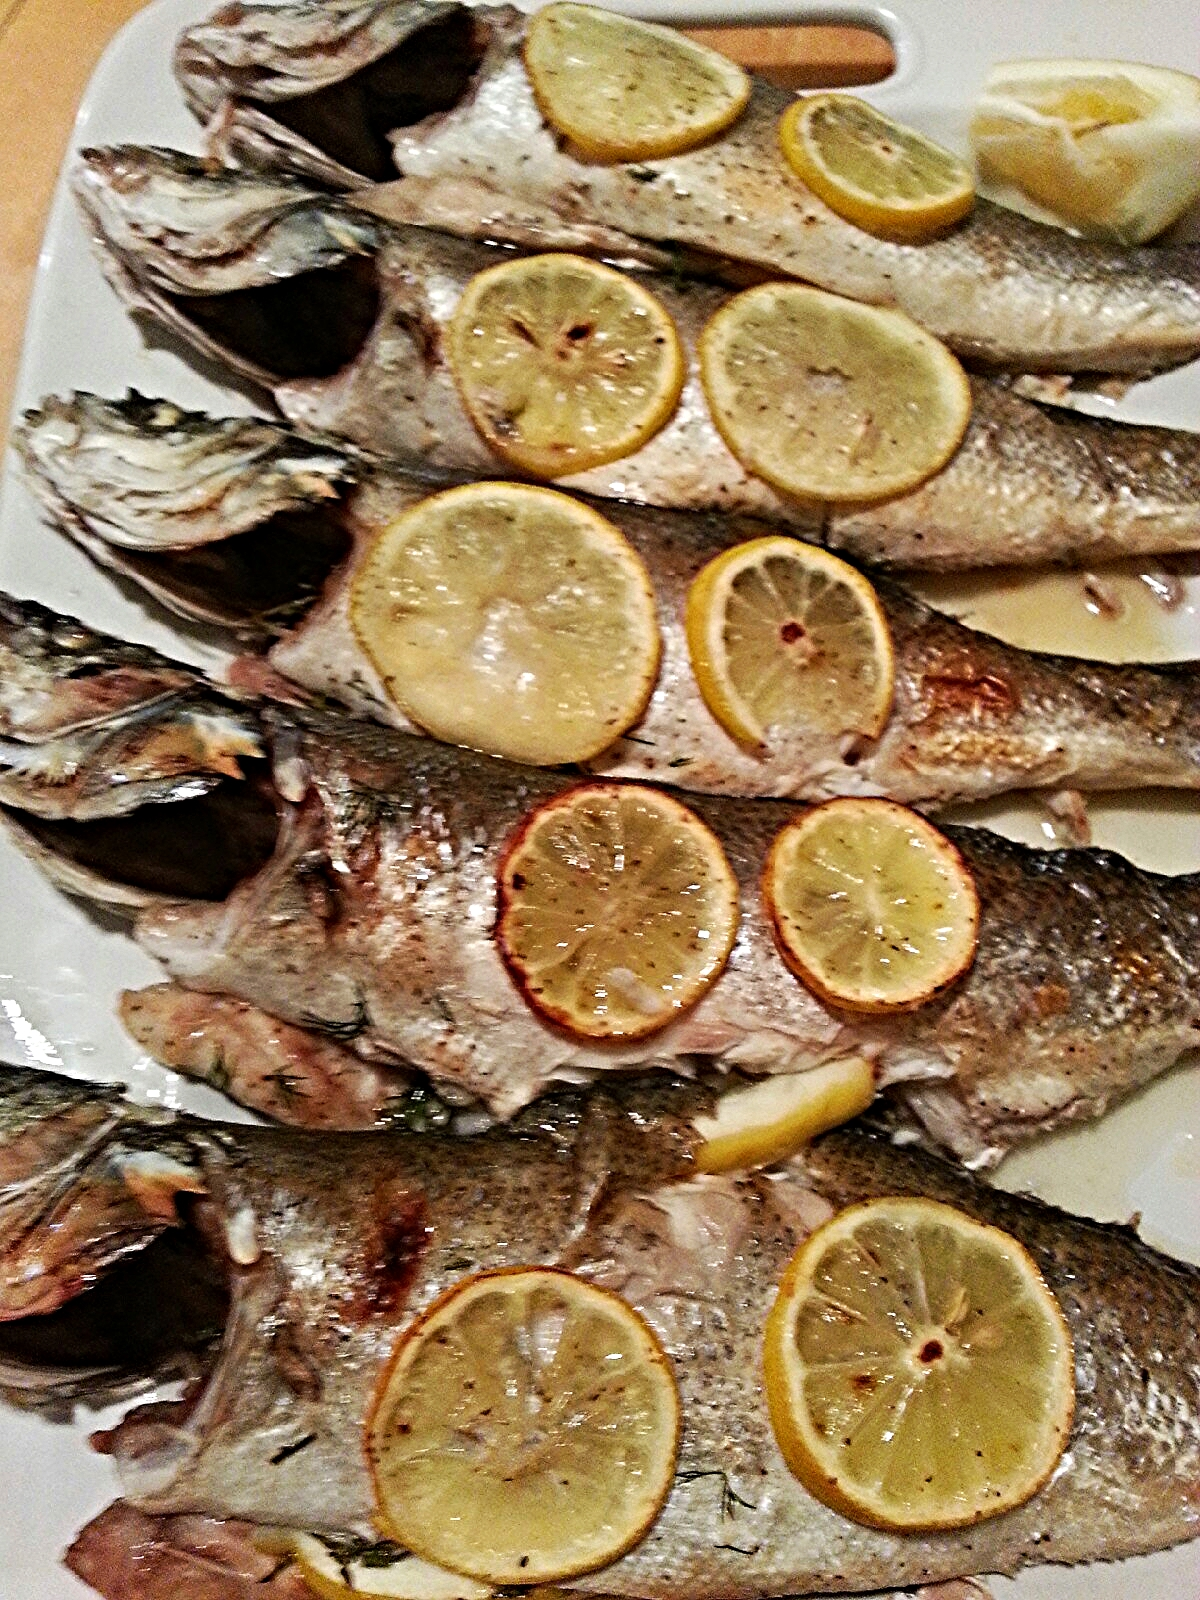 Roasted Branzino with herbs and lemon